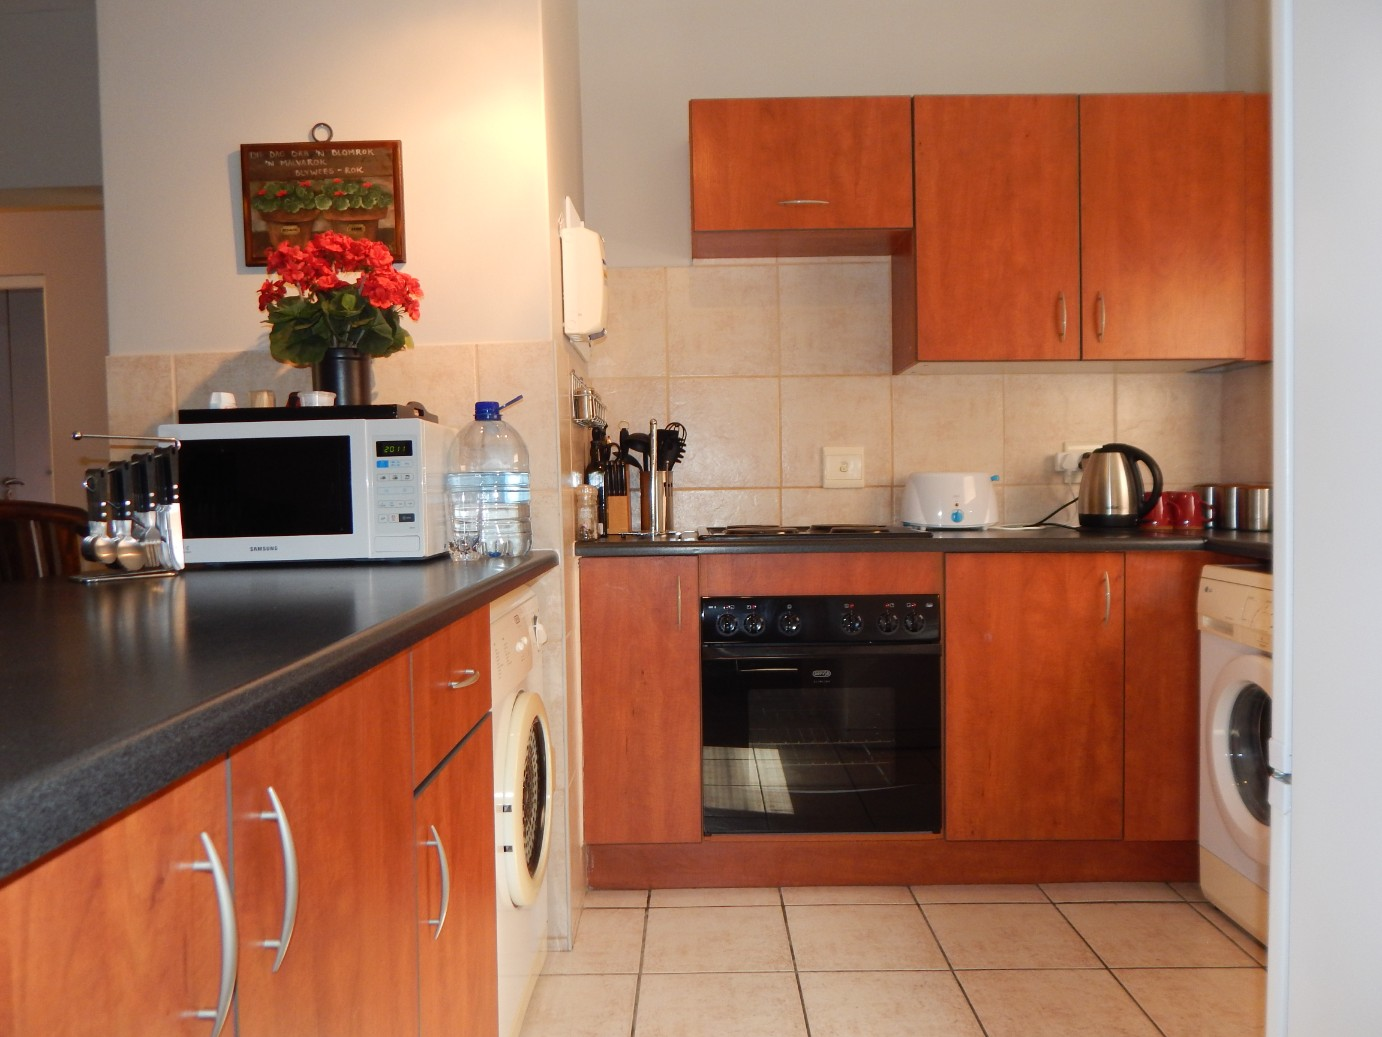 3 Bedroom Apartment for sale in Diaz Beach ENT0080239 : photo#5